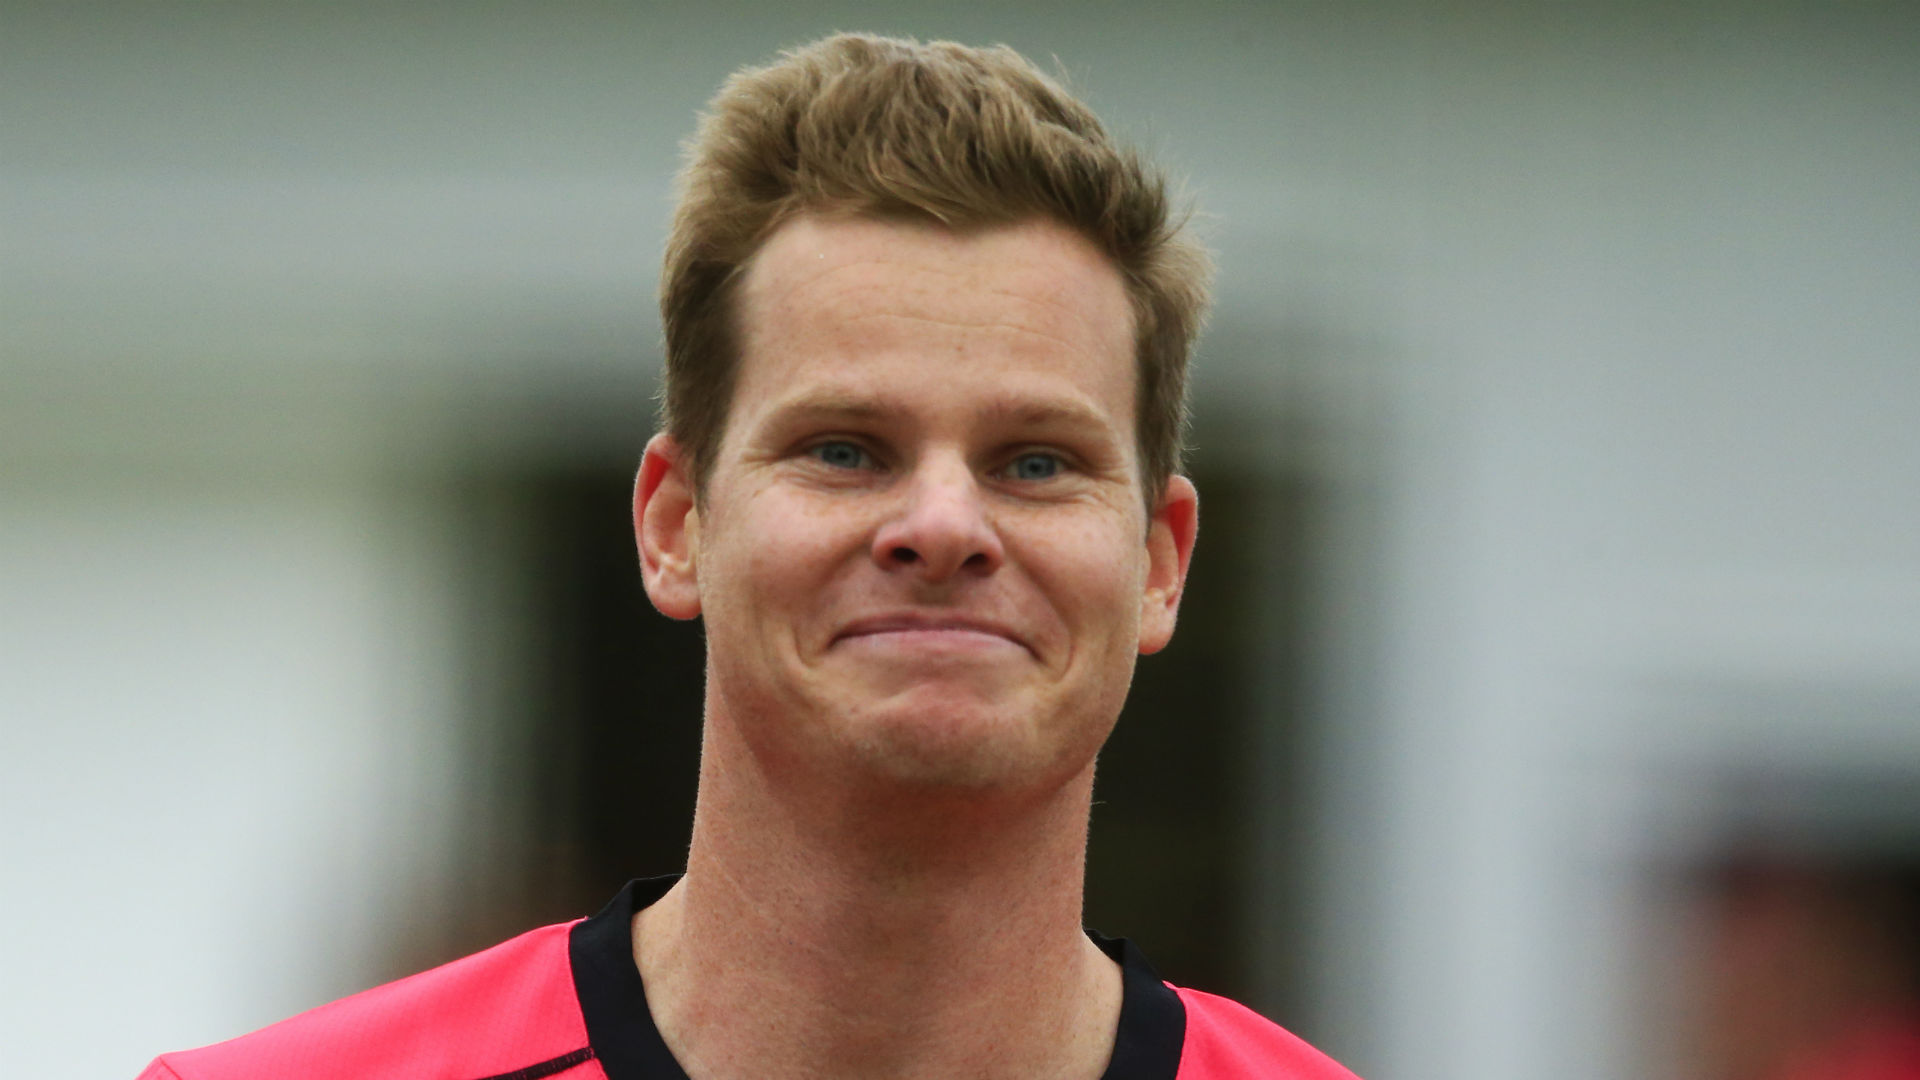 Big Bash League: Smith returns and De Villiers set for debut in revamped tournament